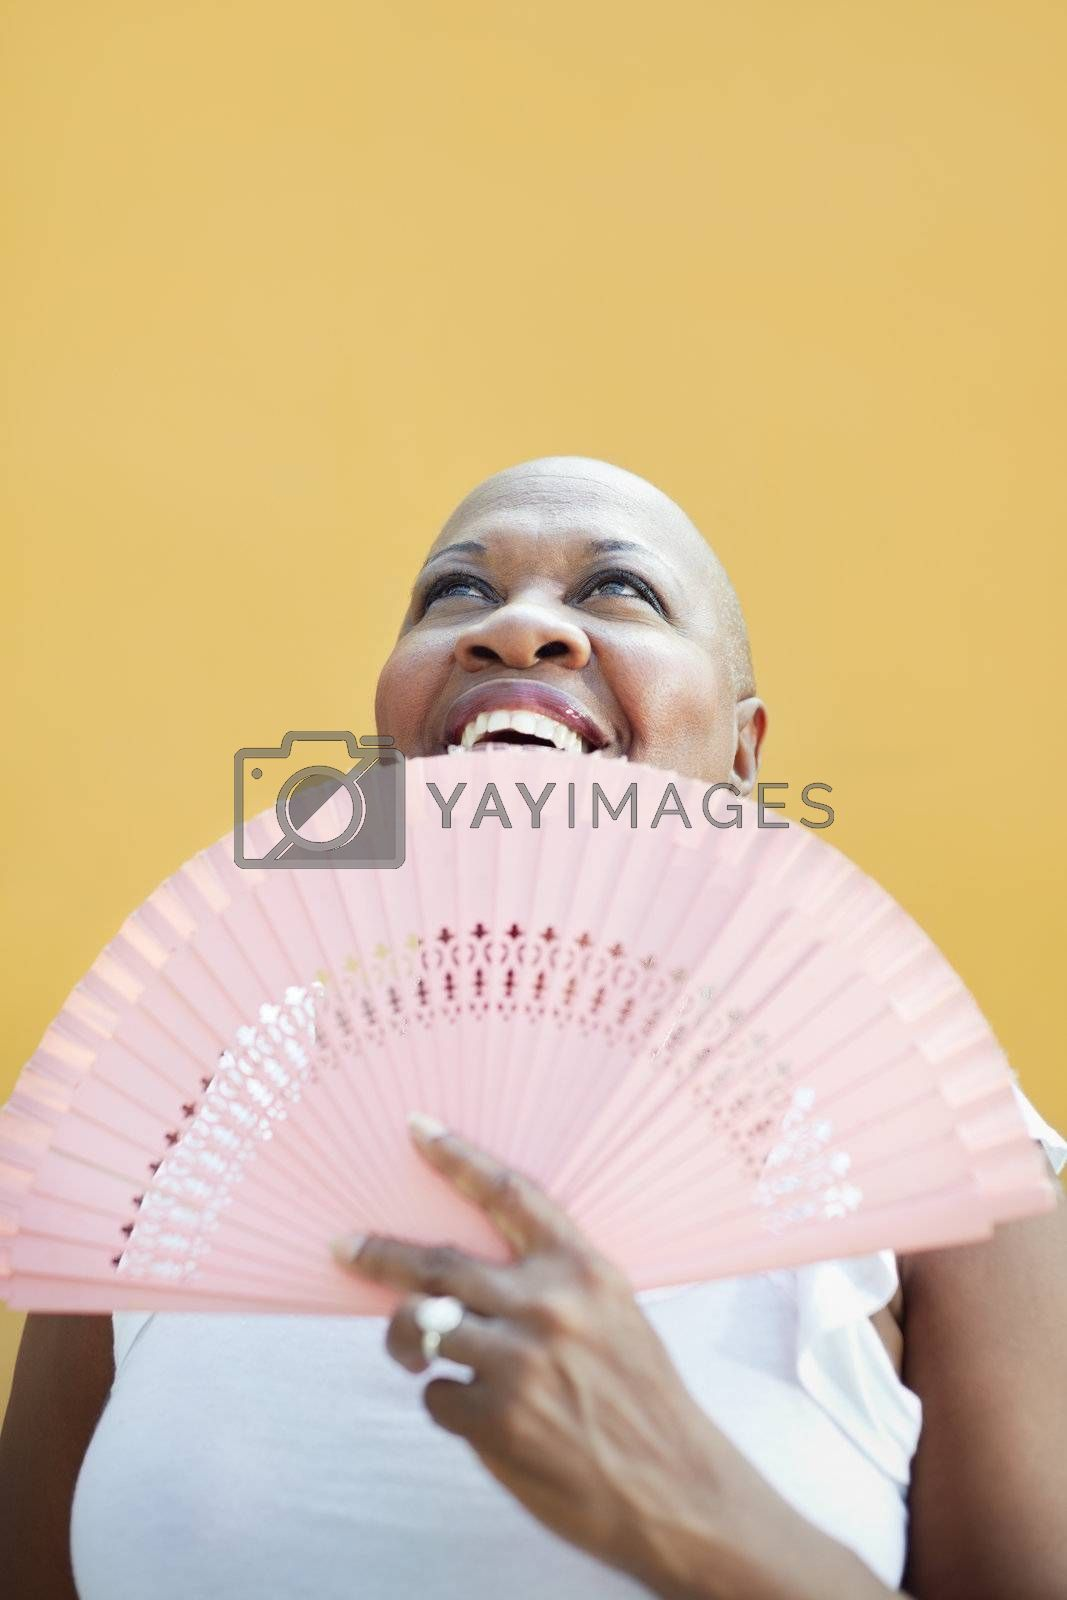 portrait of african 50 years old woman with bald head smiling on yellow background and looking up. Head and shoulders, copy space